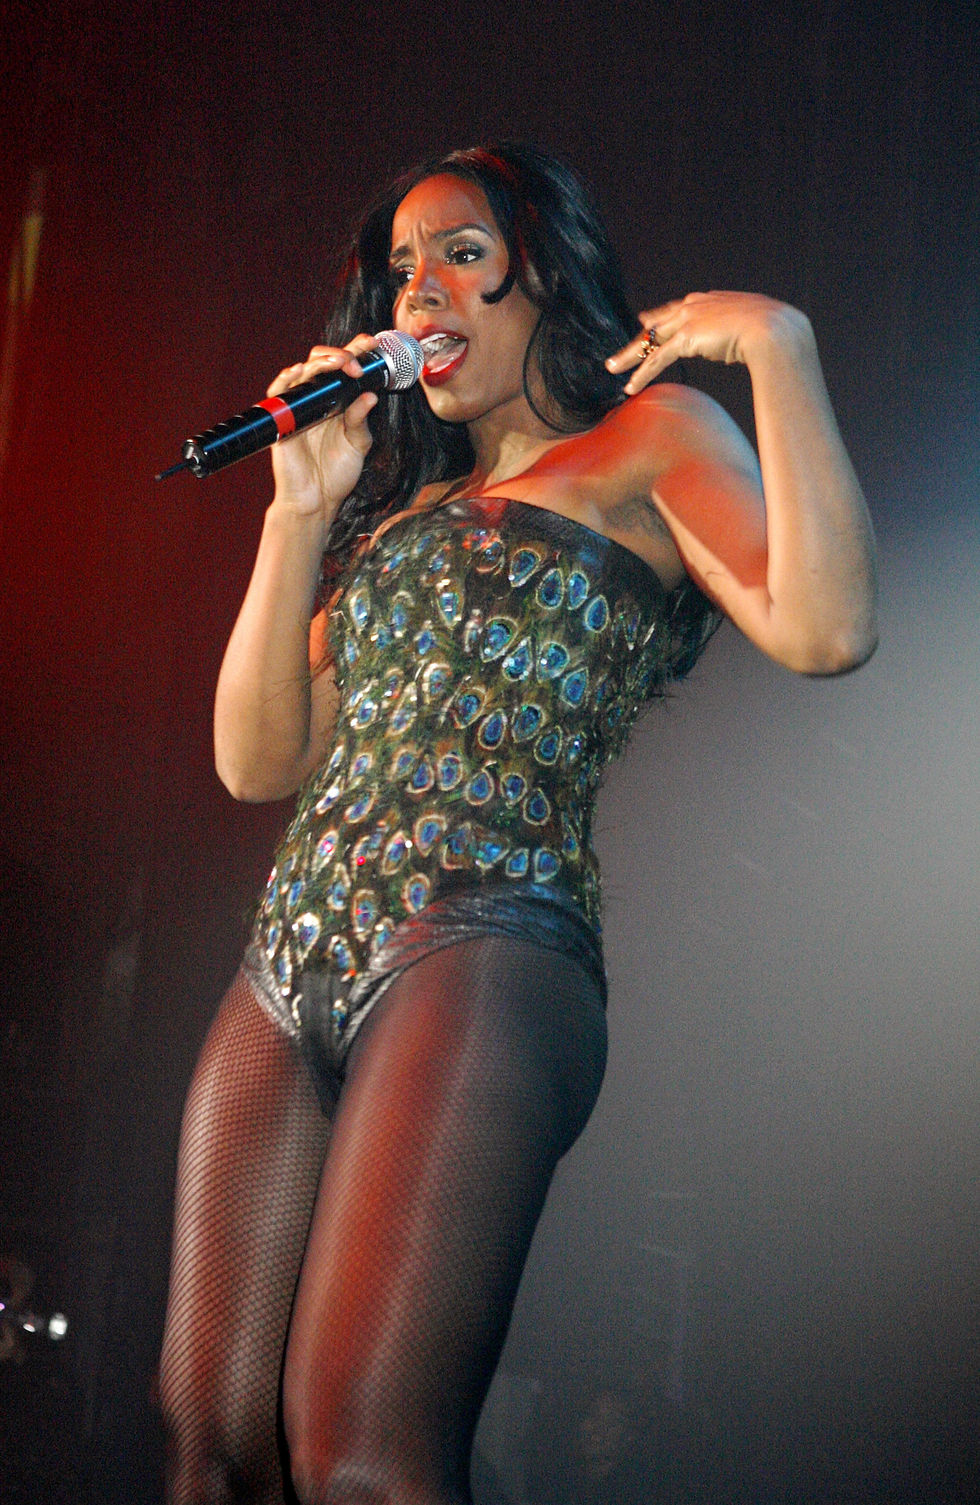 kelly-rowland-performs-on-stage-at-g-a-y-astoria-club-in-london-07